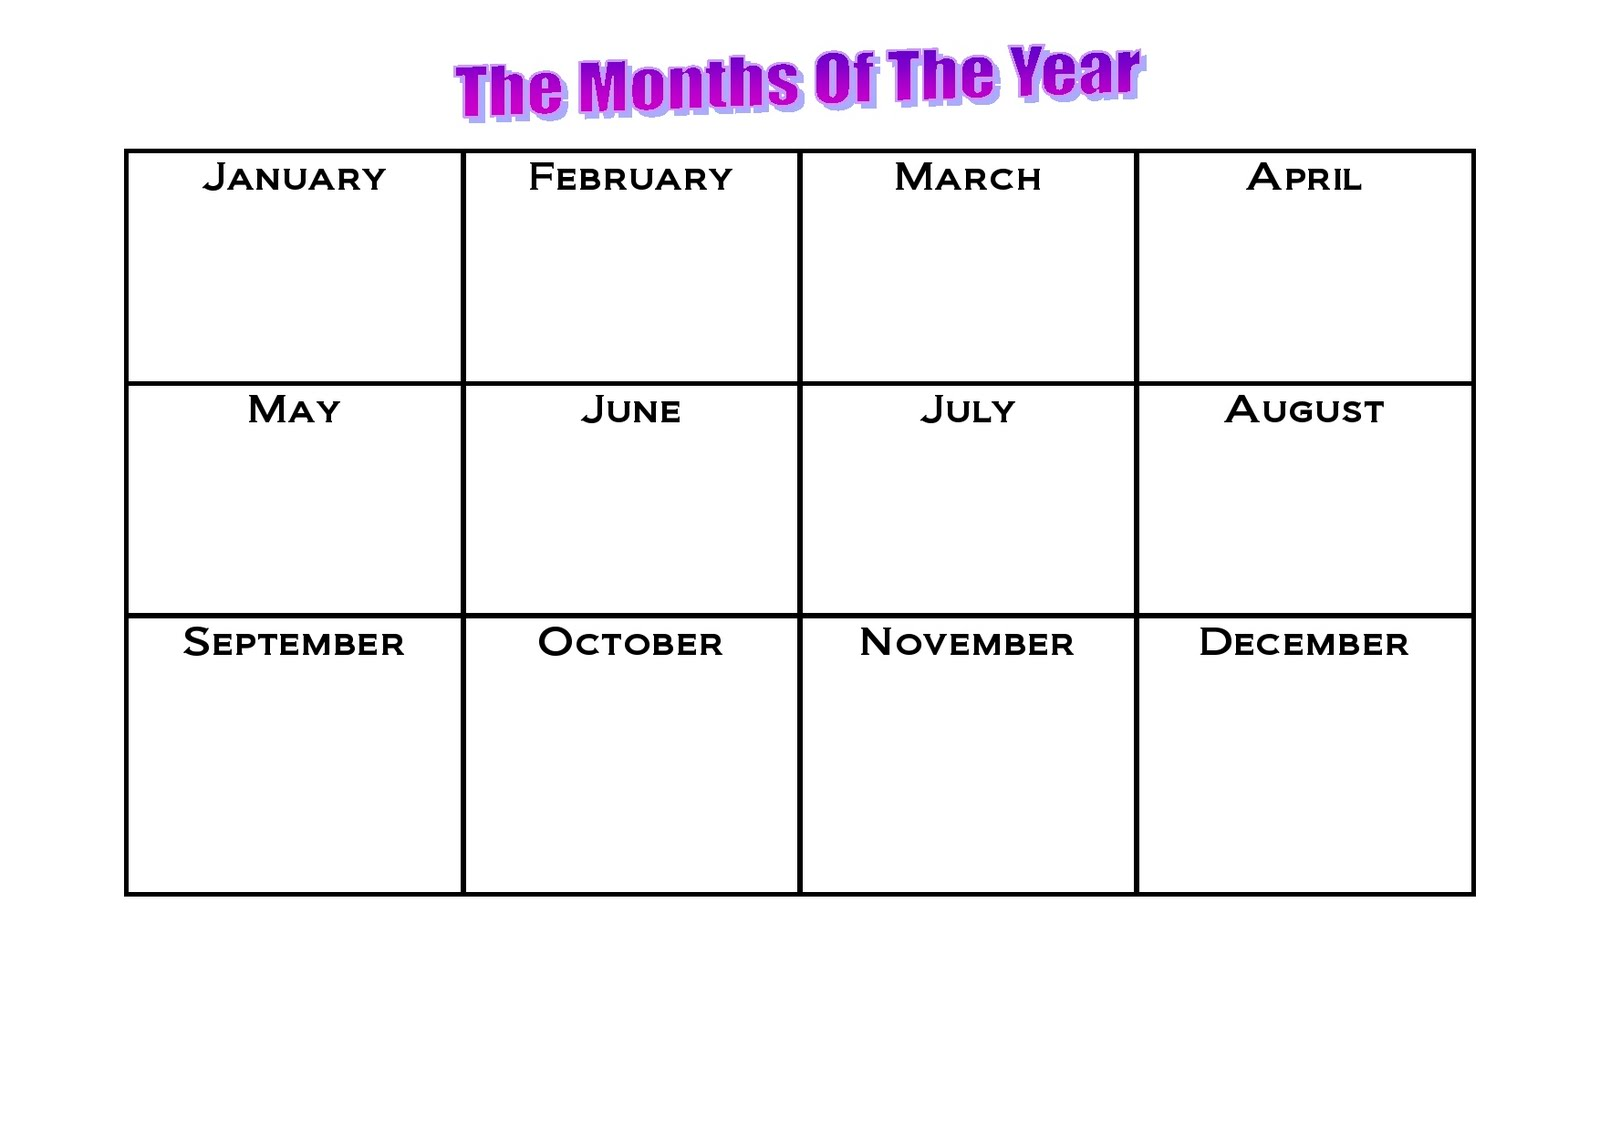 months+of+the+year+chart.jpg